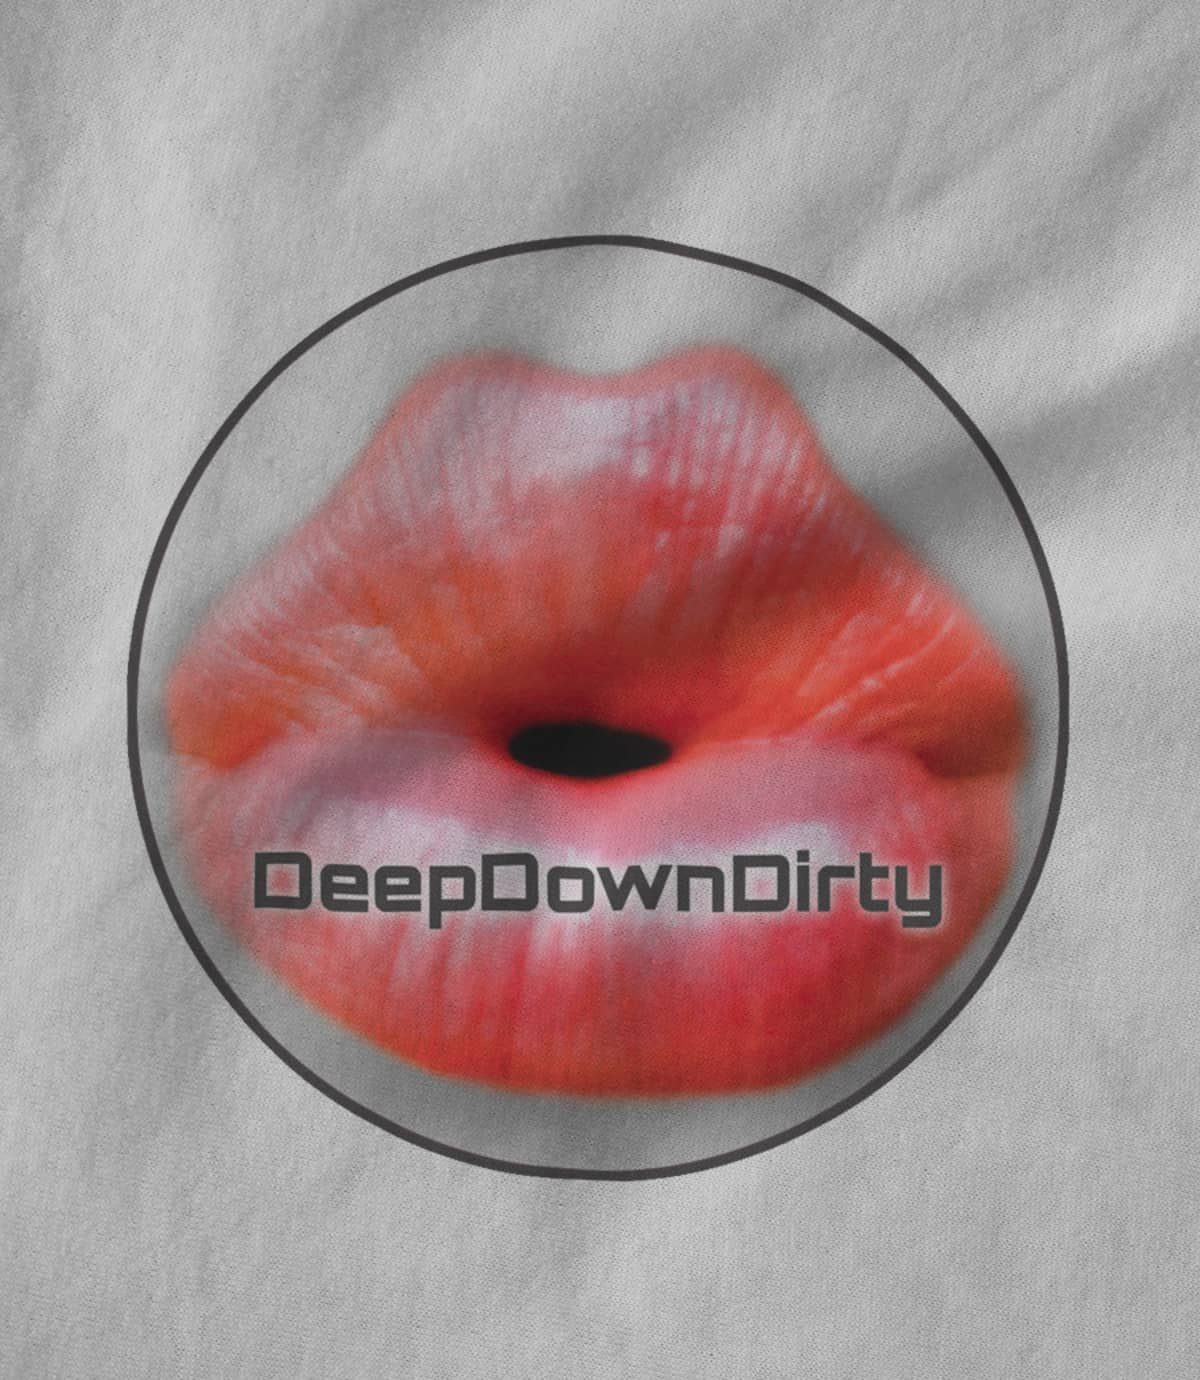 Deepdowndirty record label classic lips round 1522800105